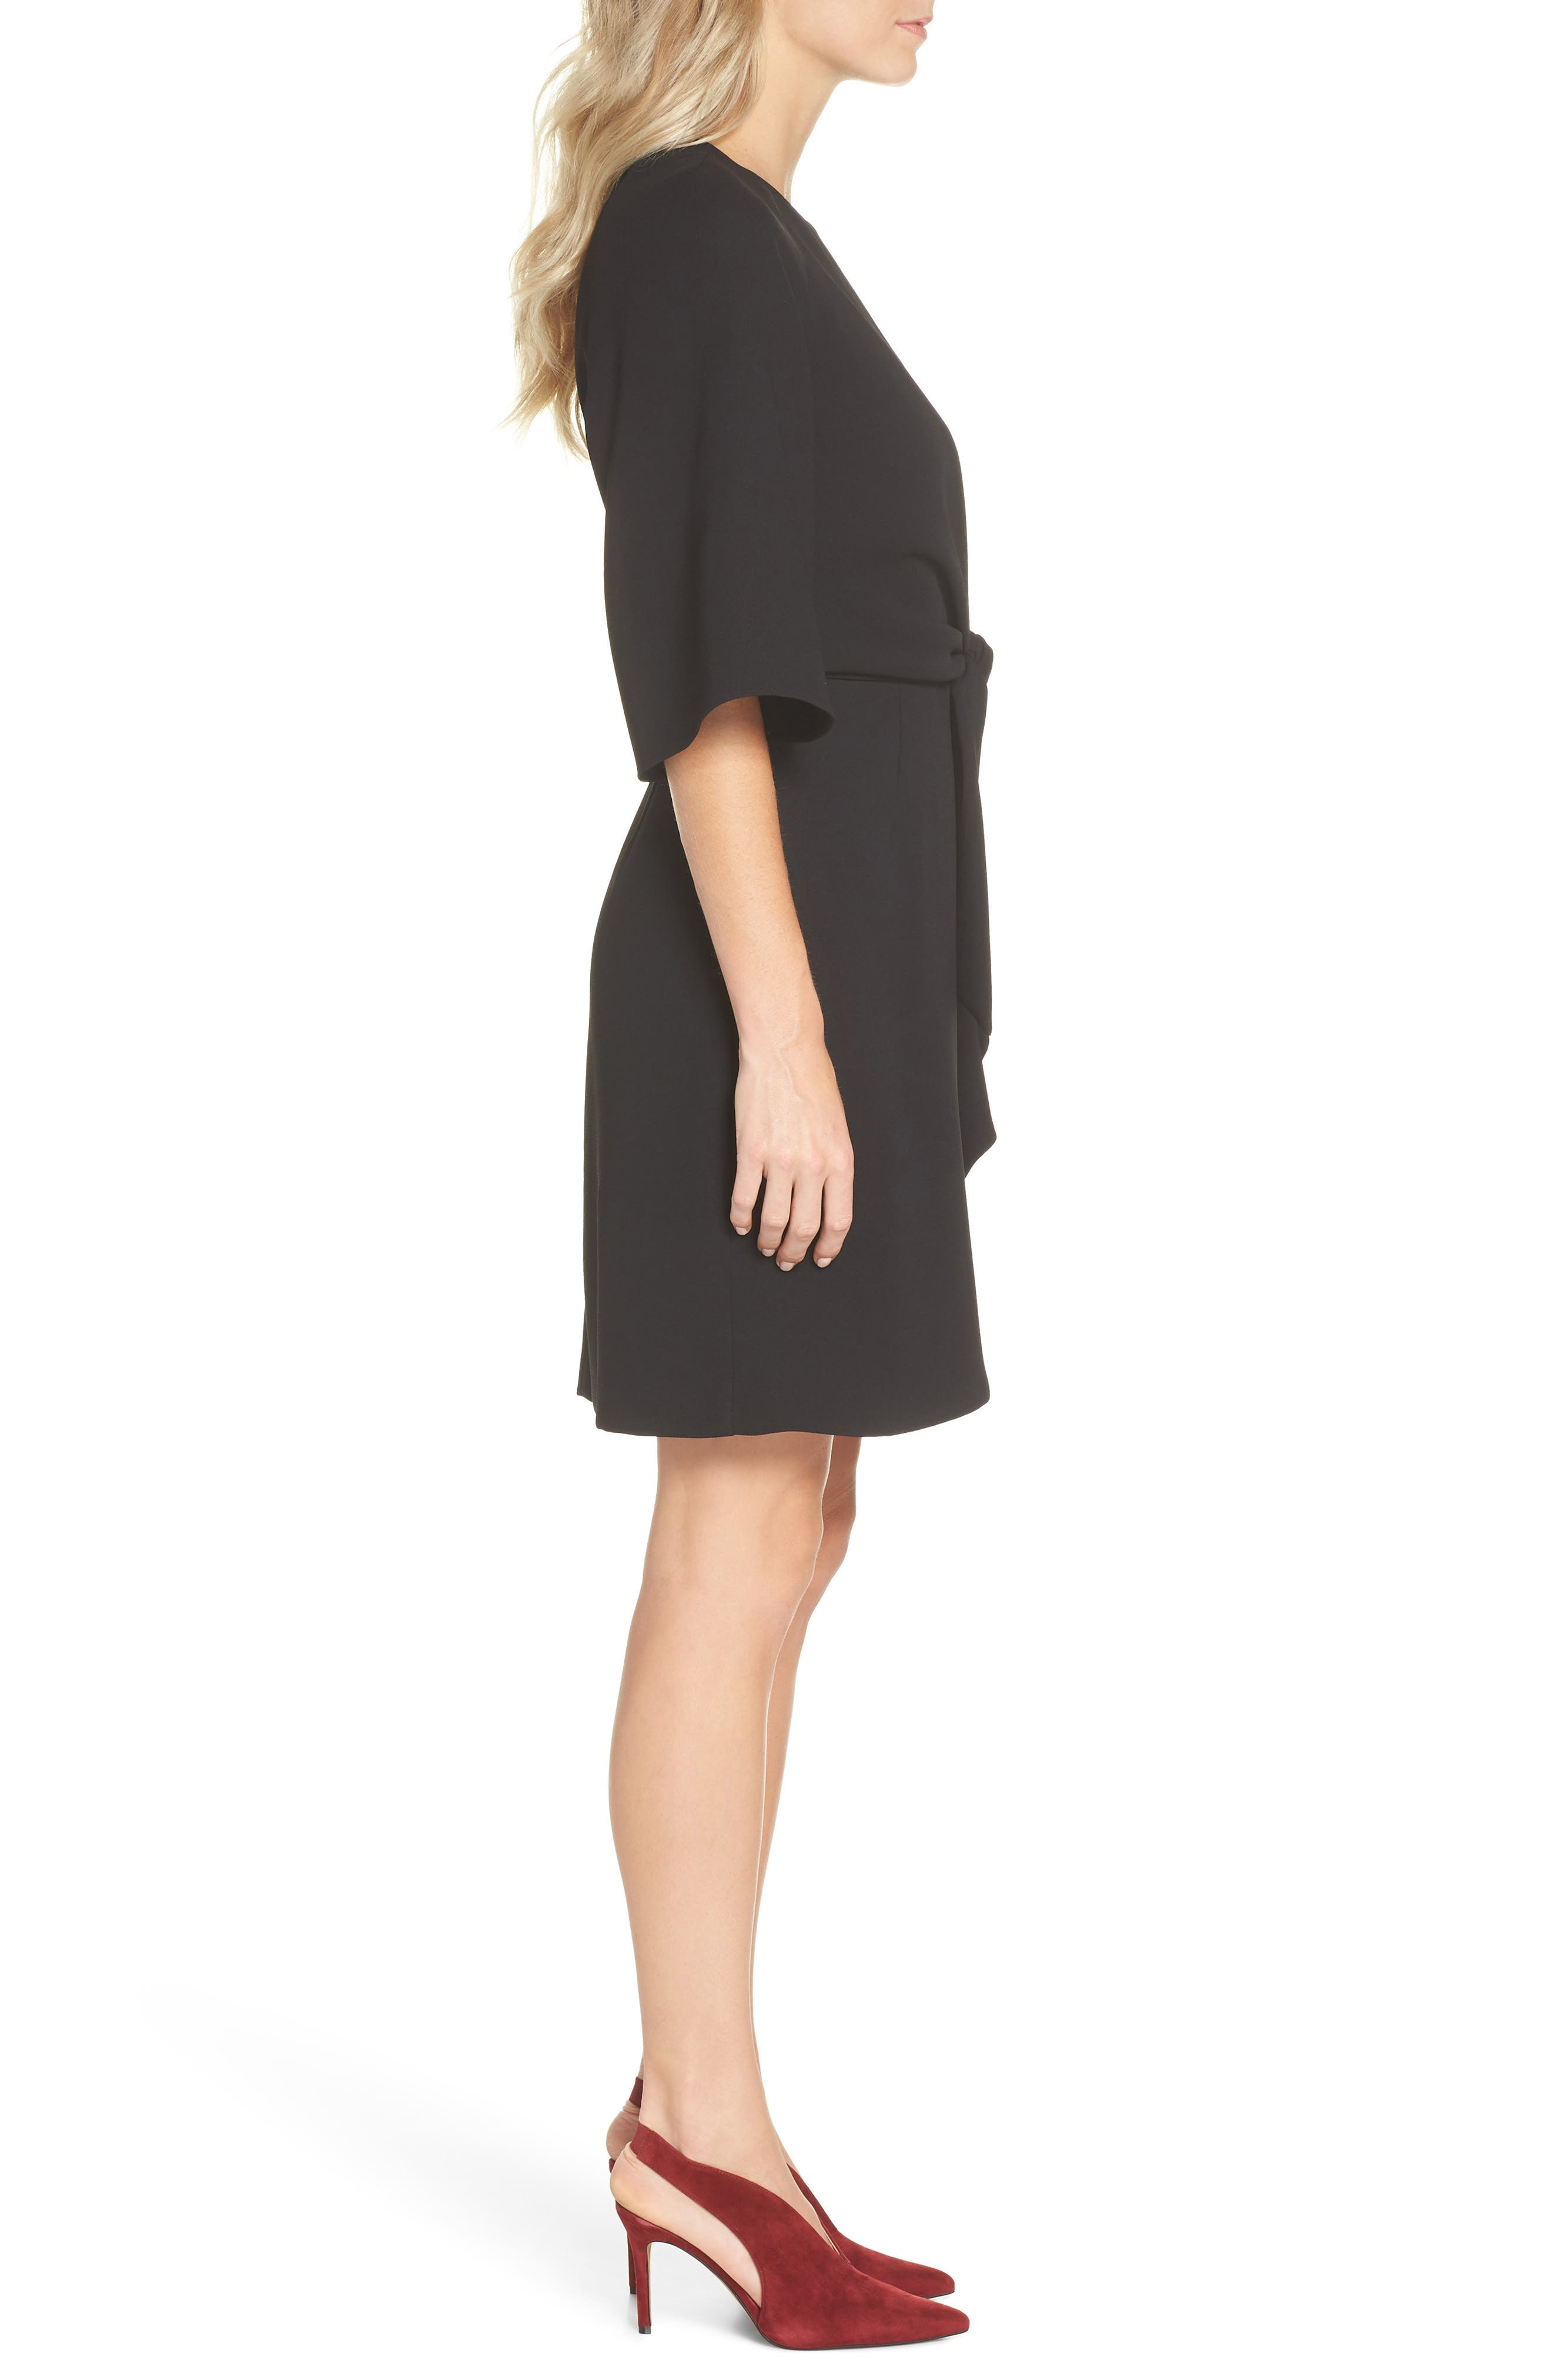 TAHARI, Tie Front Crepe Sheath Dress, Alternate thumbnail 4, color, BLACK